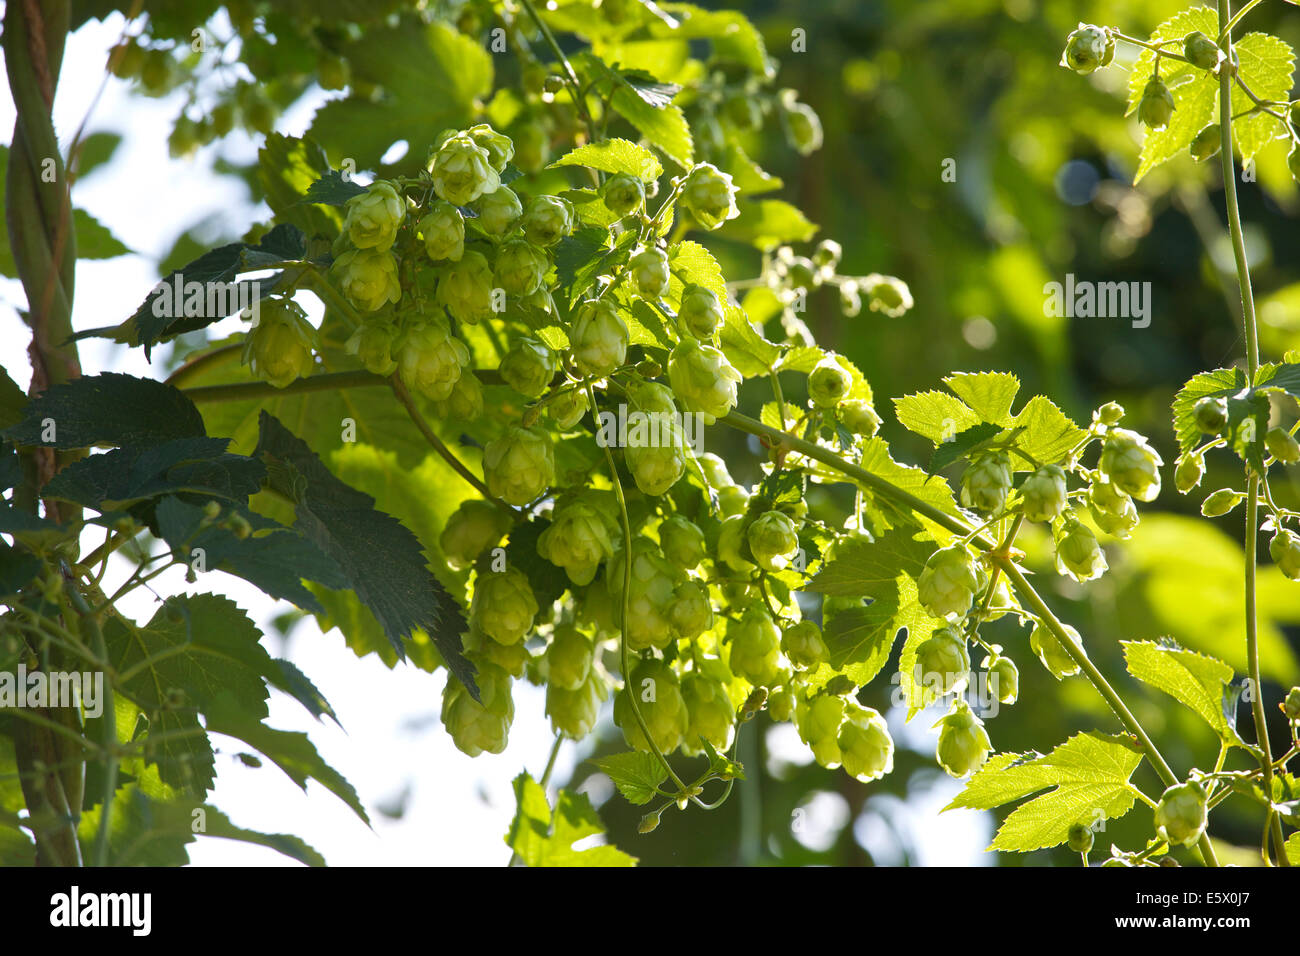 Faversham, Kent, UK 7th August, 2014. Hops (humulus lupulus) ripen in the sunshine as a warm dry day continues, - Stock Image